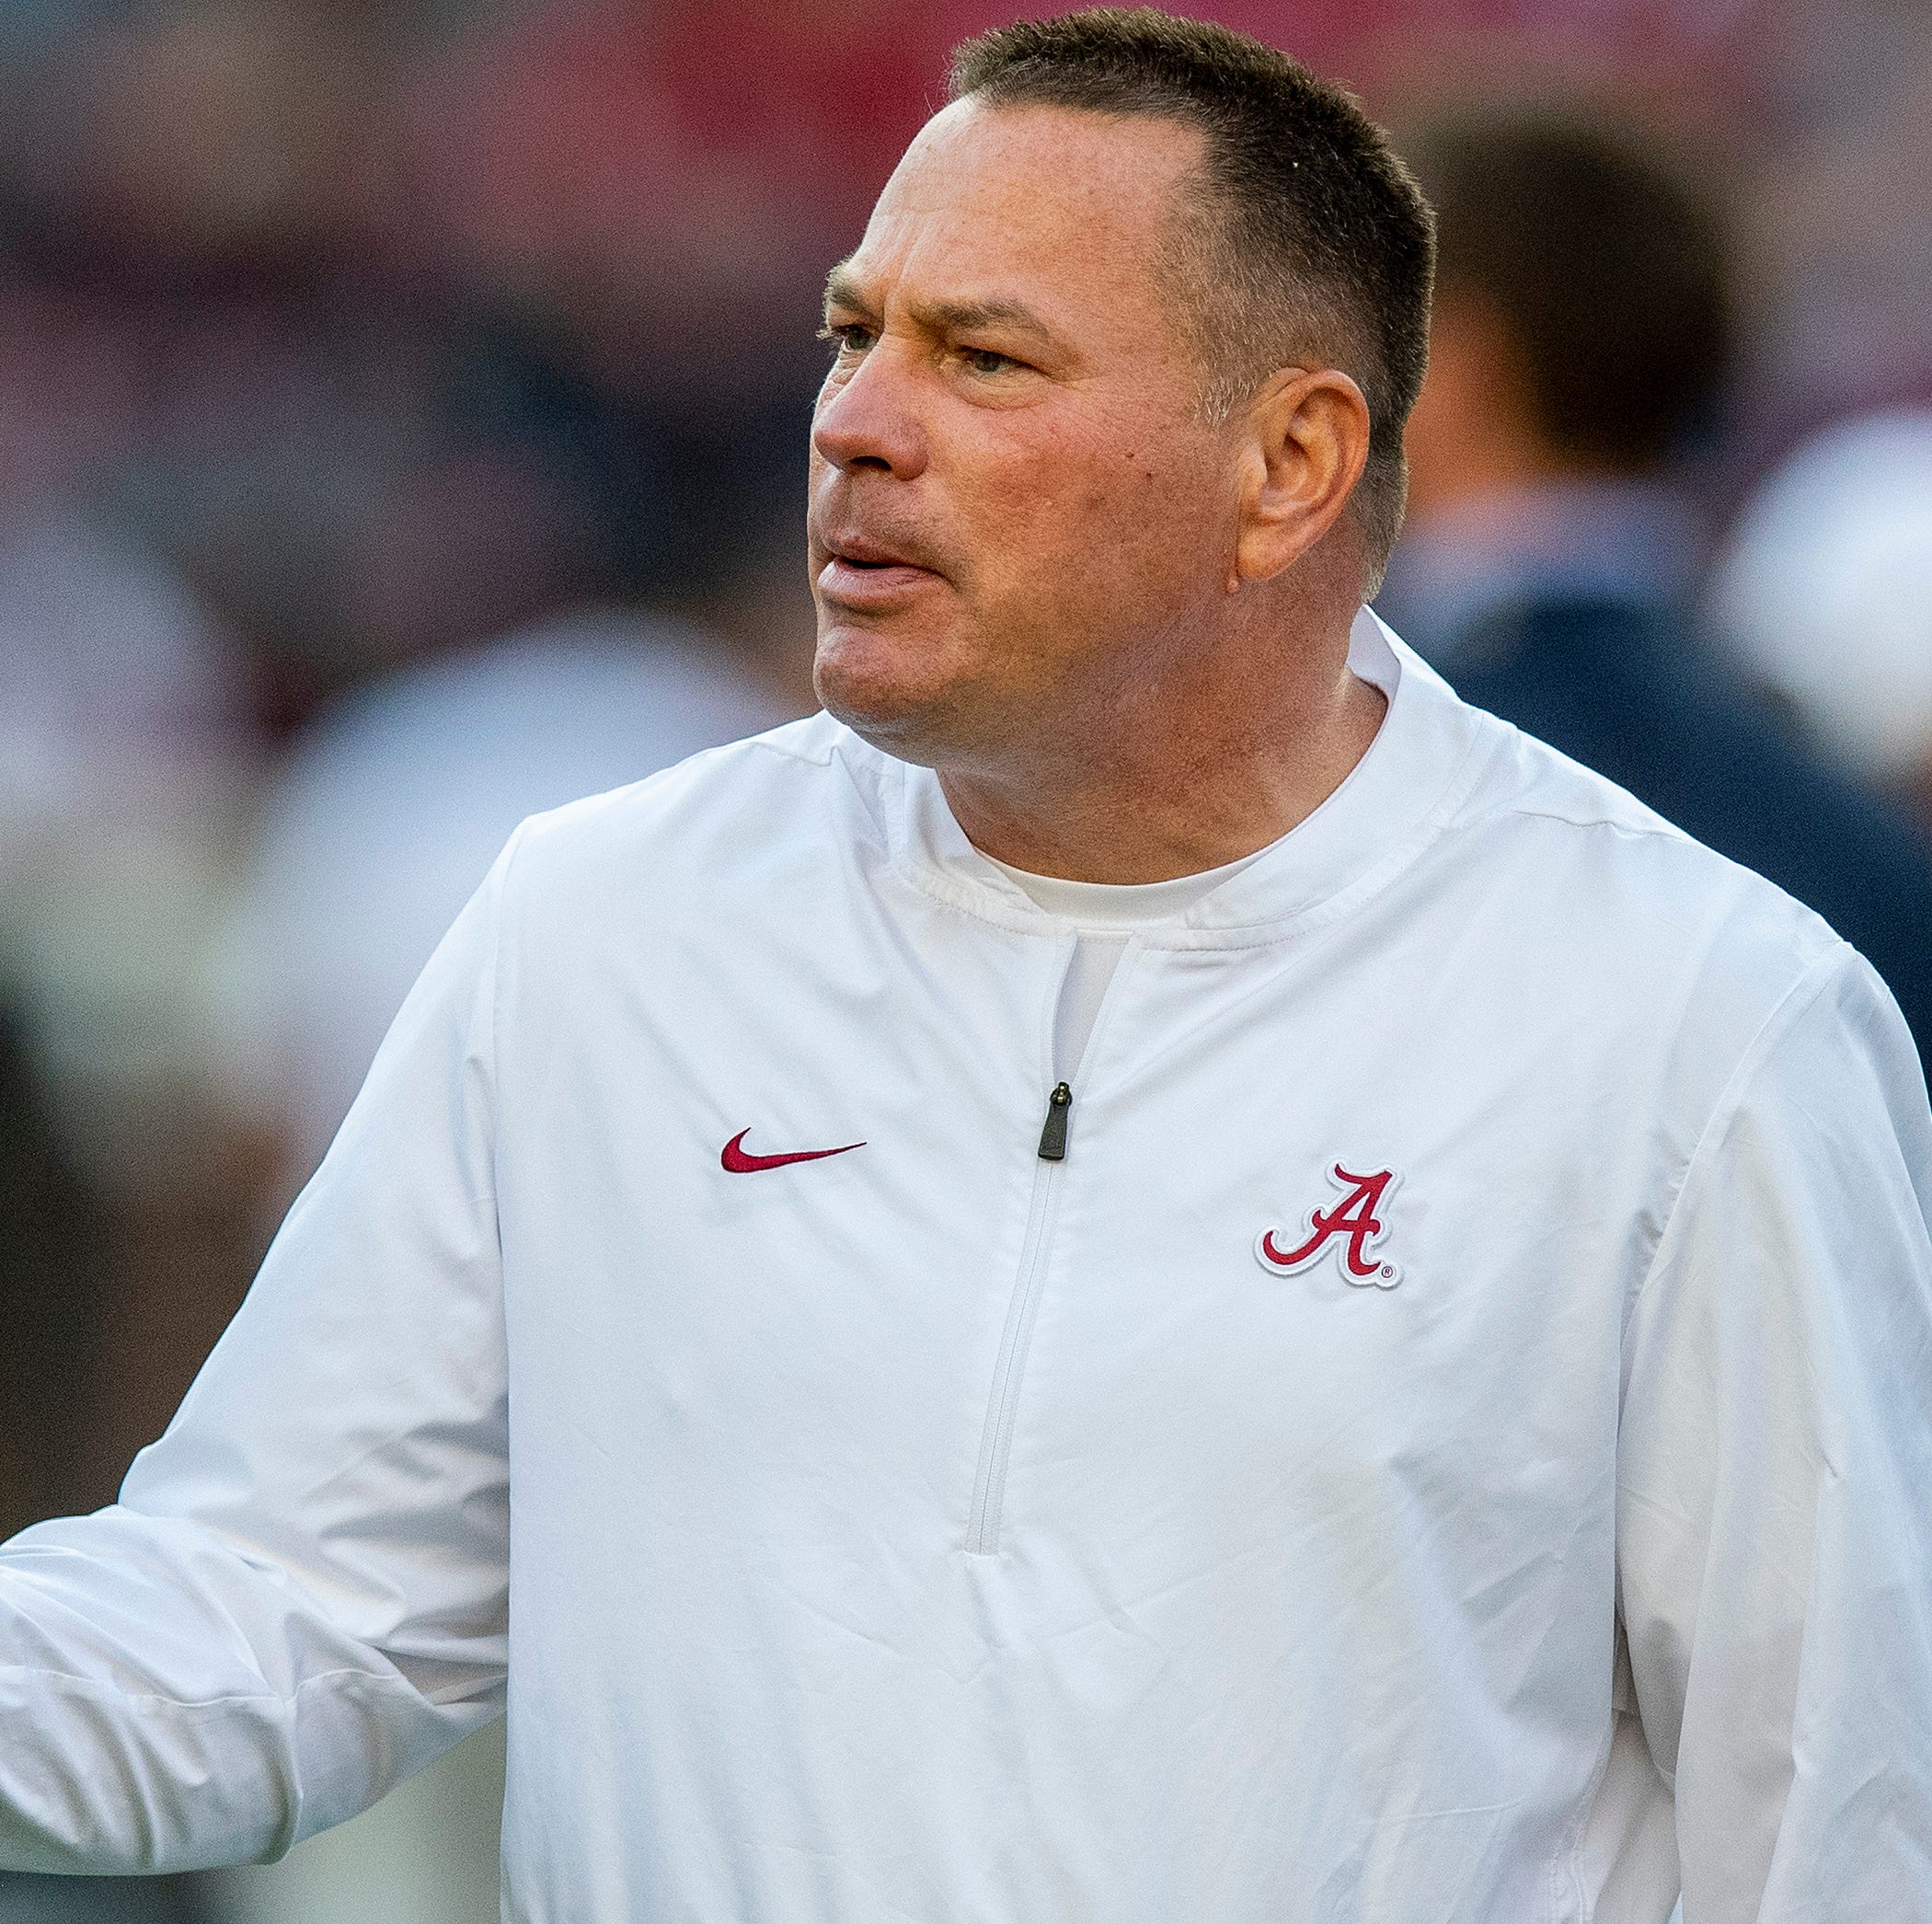 Alabama players tease ex-Tennessee coach Butch Jones about record vs. Tide